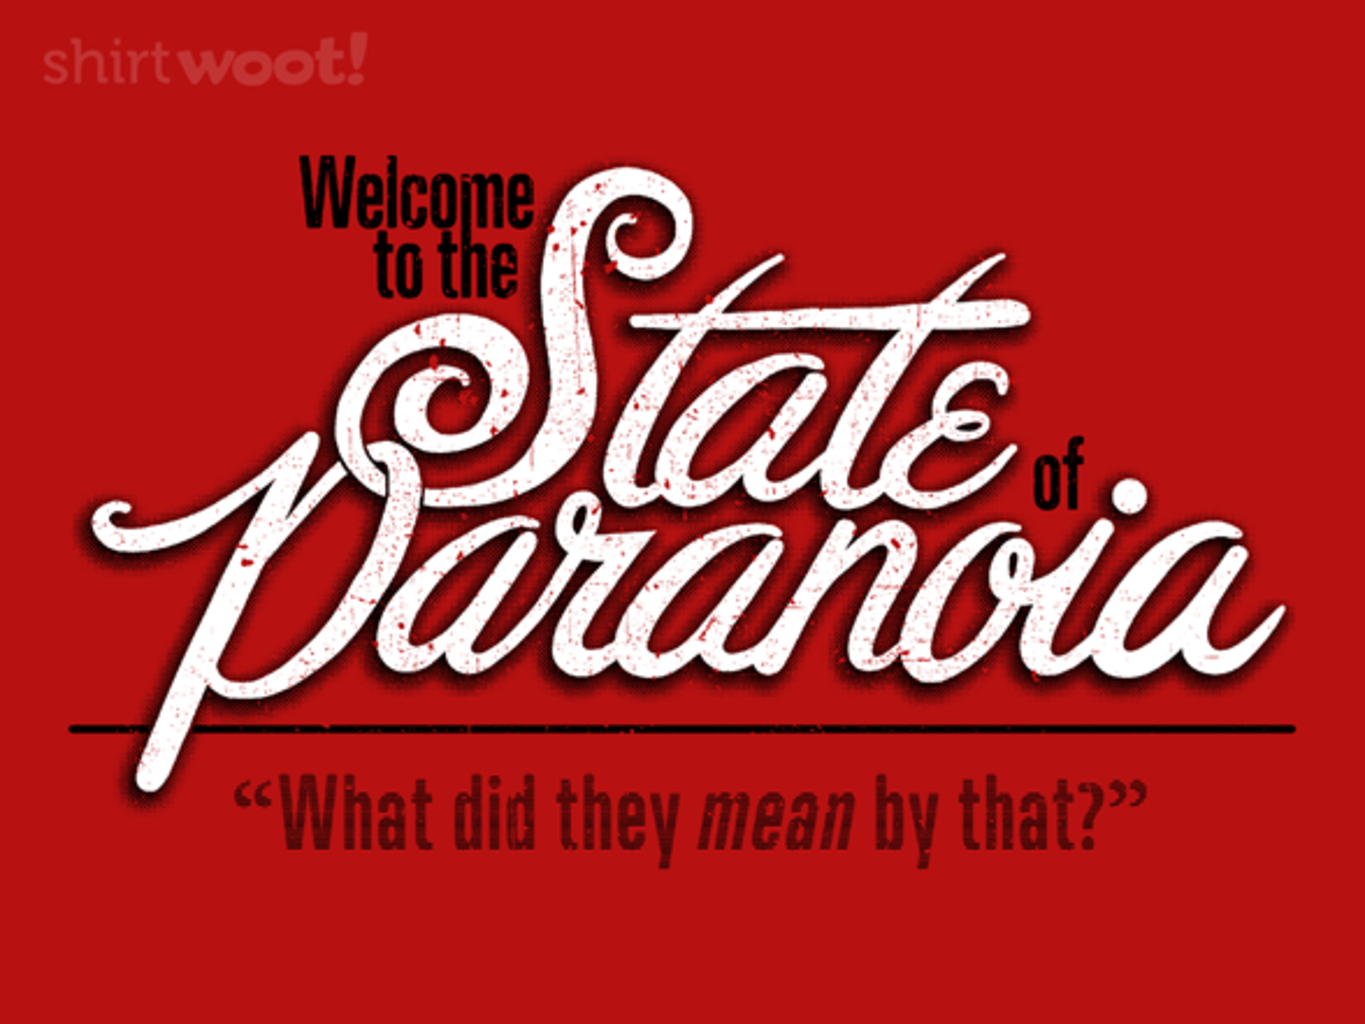 Woot!: State of Paranoia